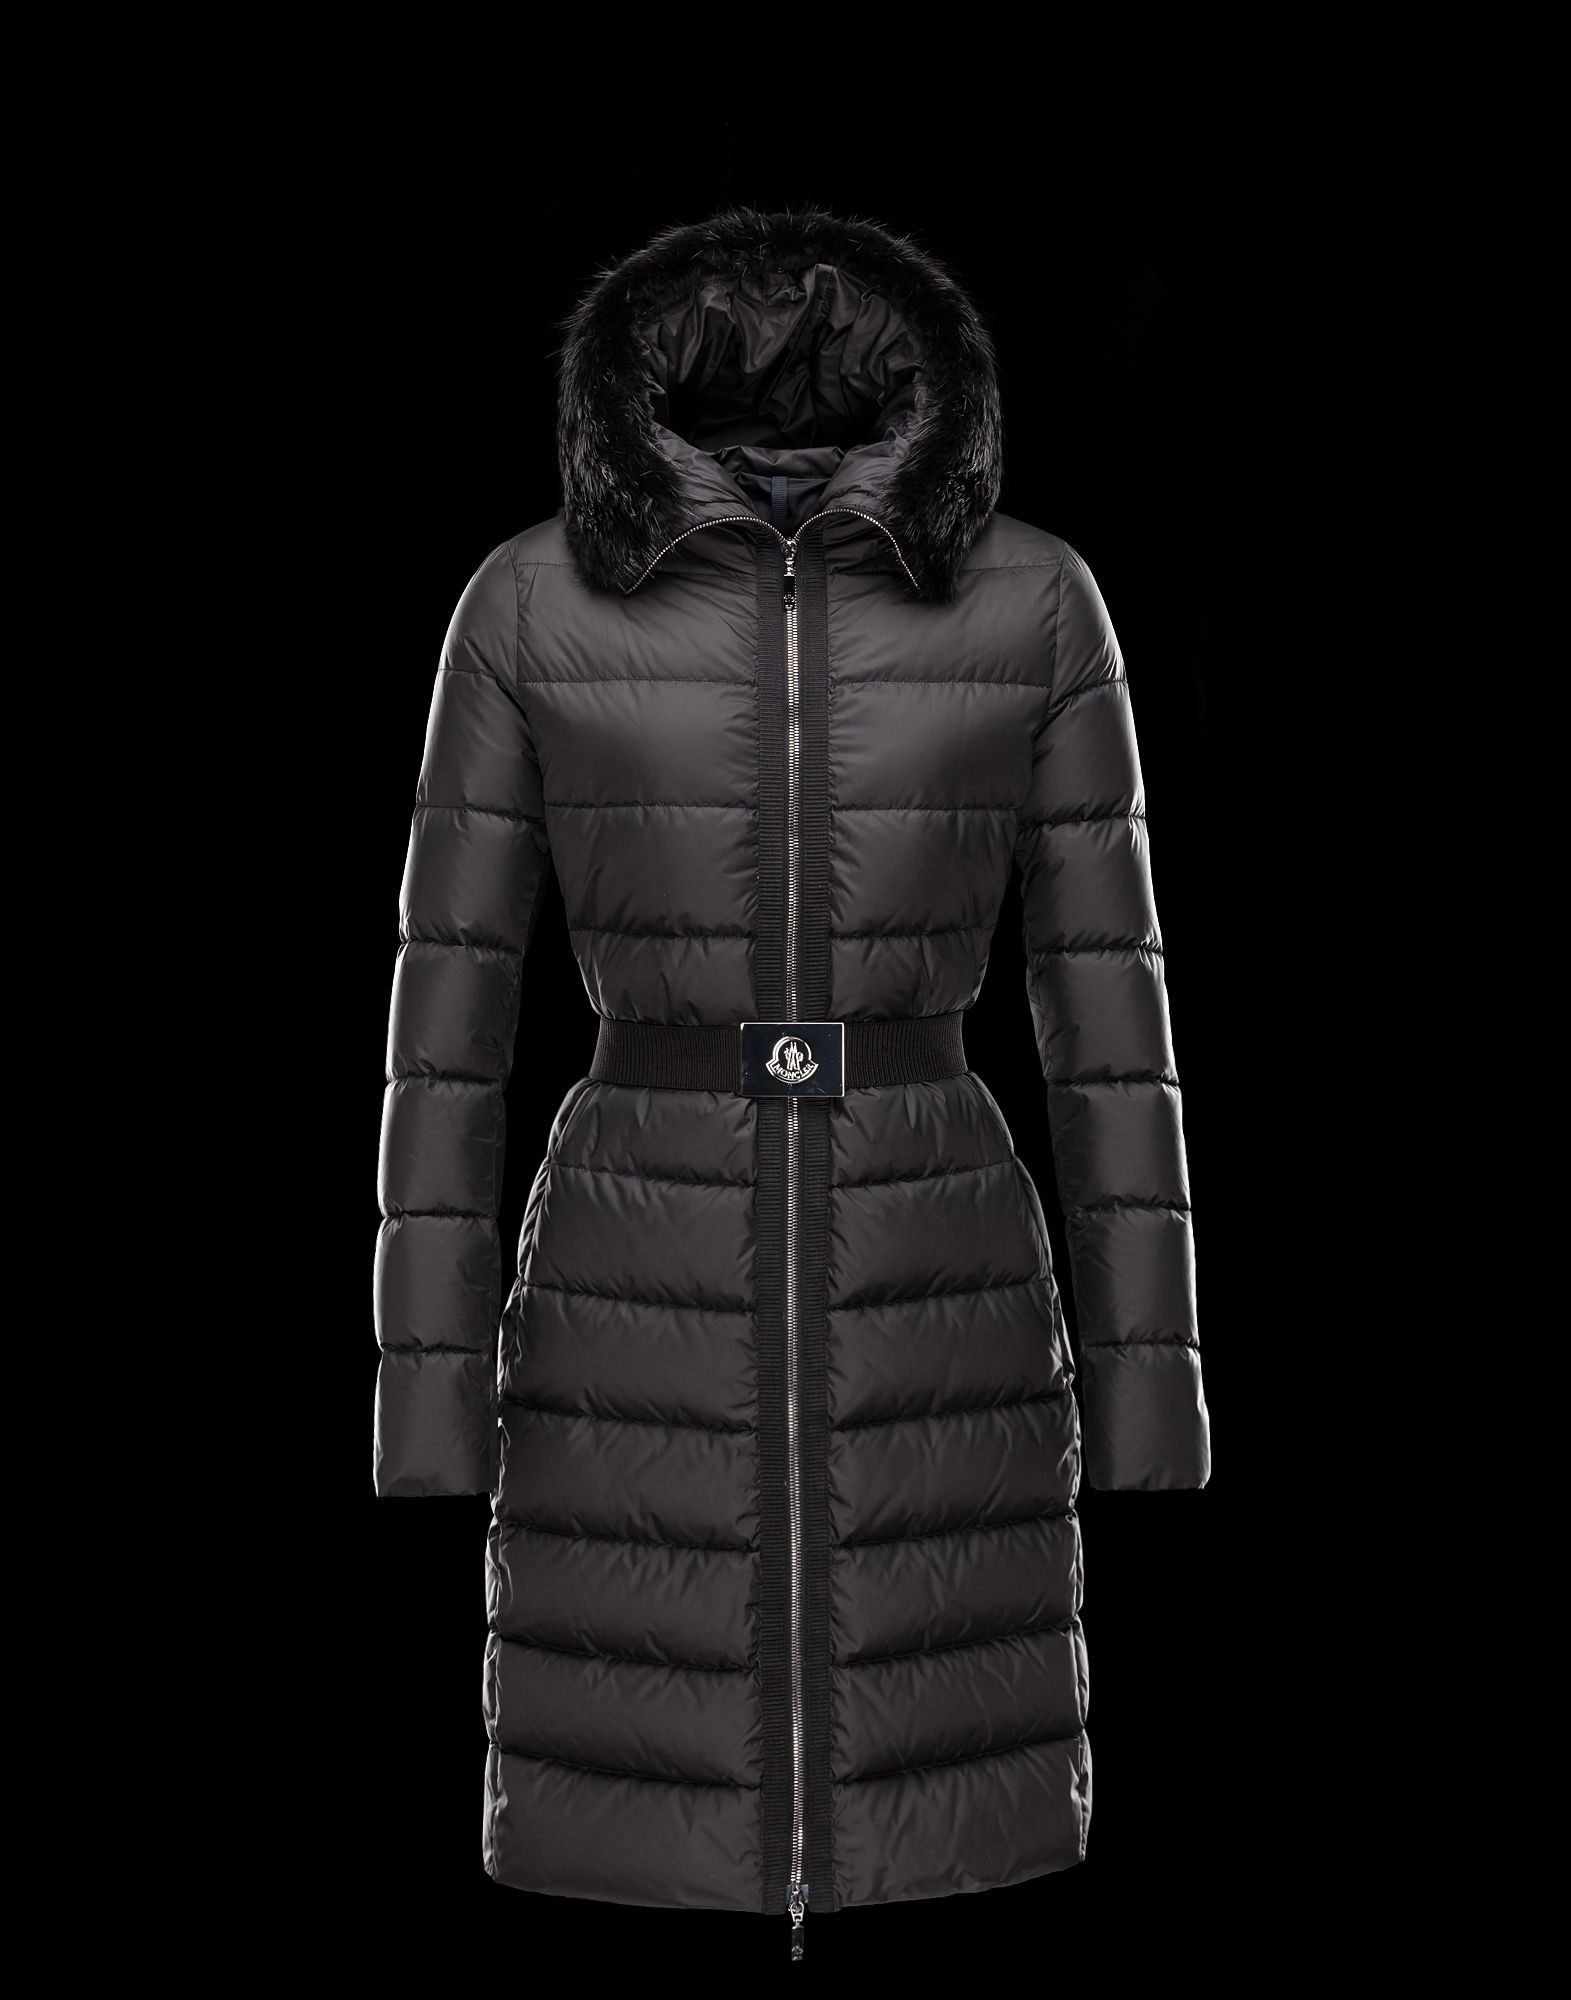 15 Best HClothes images | Moncler, Women, Coats for women